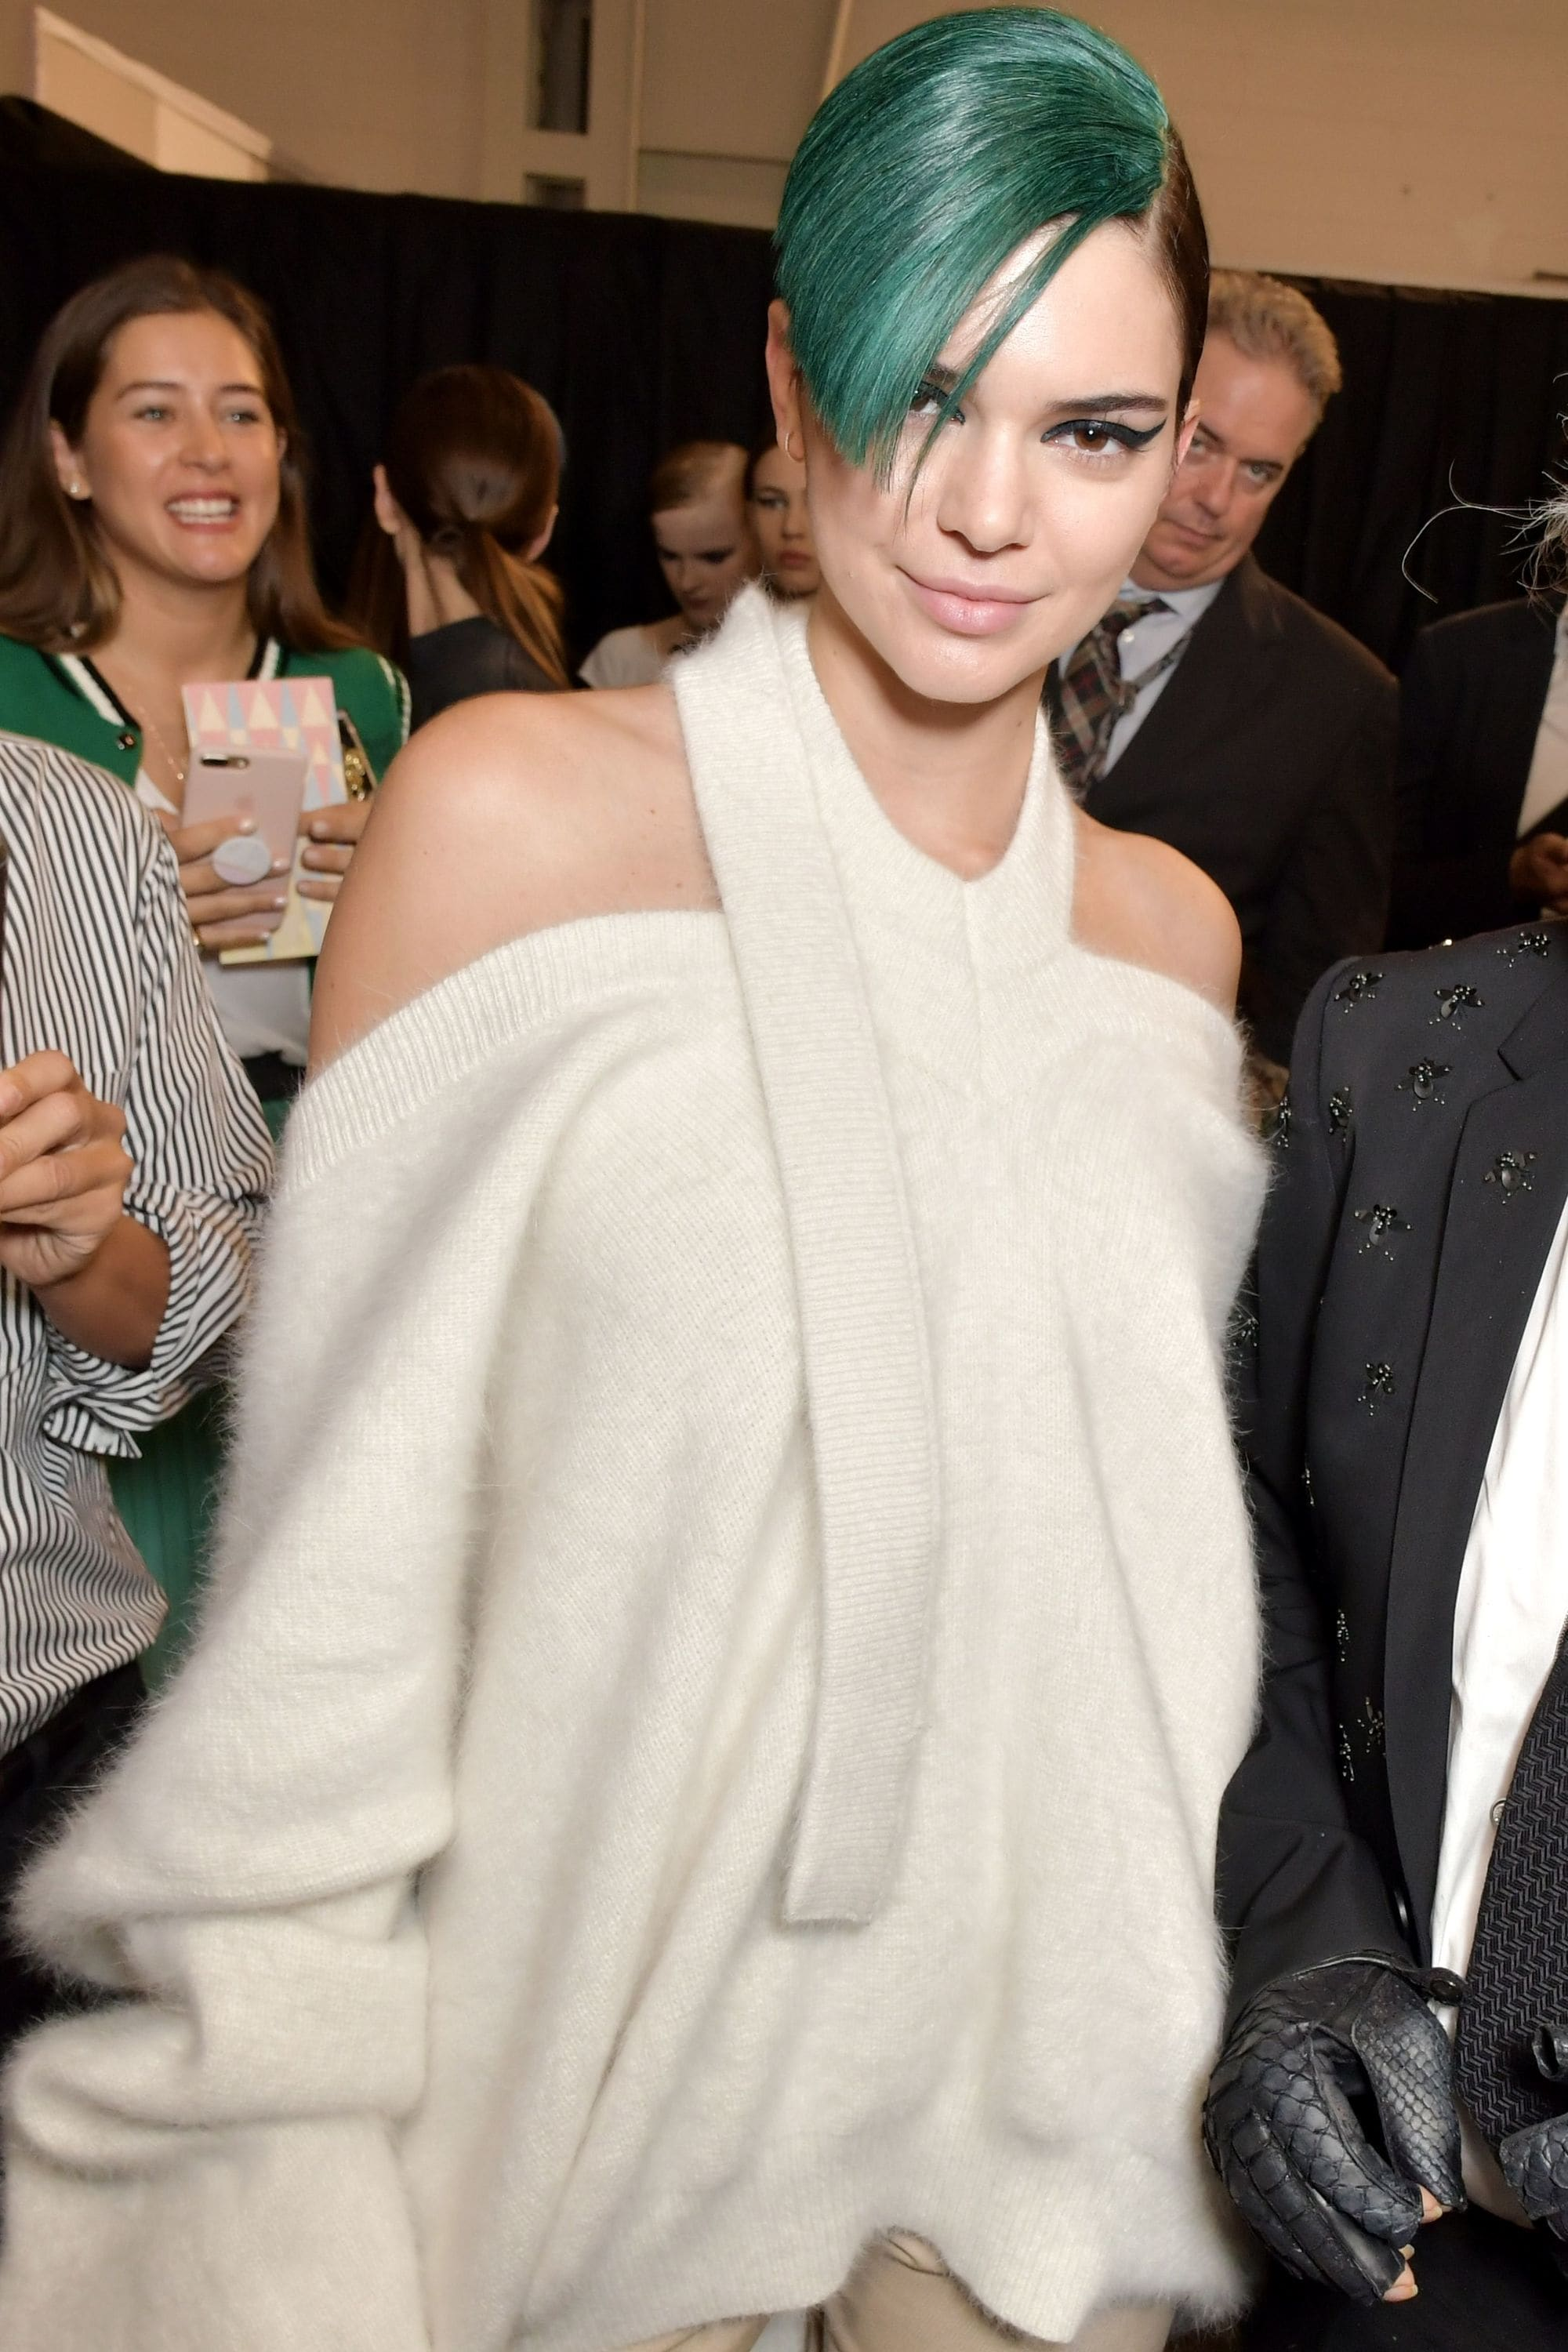 Green hair: Kendall Jenner with dark green fringe at Fendi show wearing a white outfit.